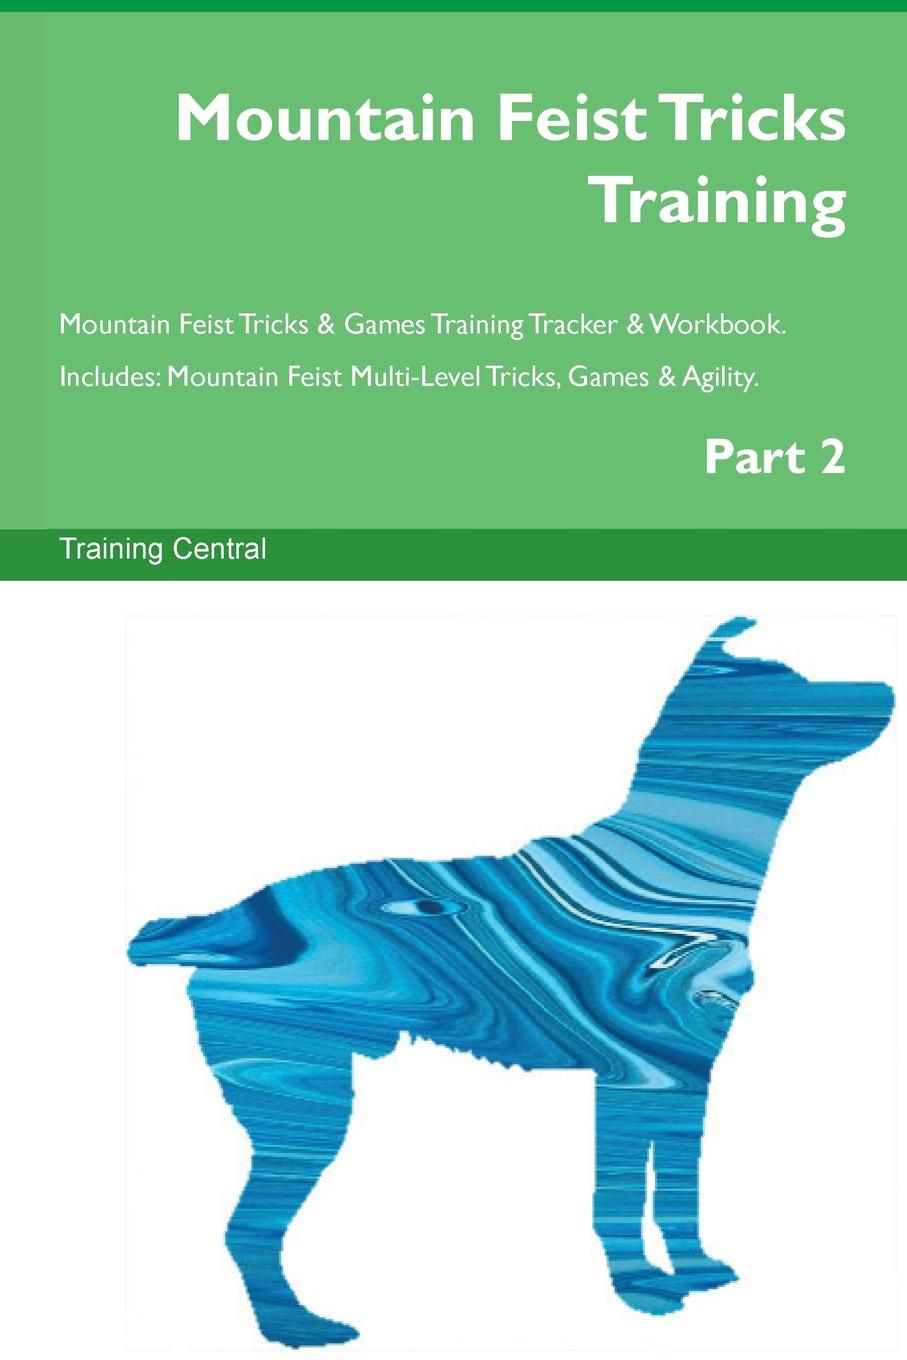 Training Central Mountain Feist Tricks Training Mountain Feist Tricks & Games Training Tracker & Workbook. Includes. Mountain Feist Multi-Level Tricks, Games & Agility. Part 2 training central mountain feist tricks training mountain feist tricks